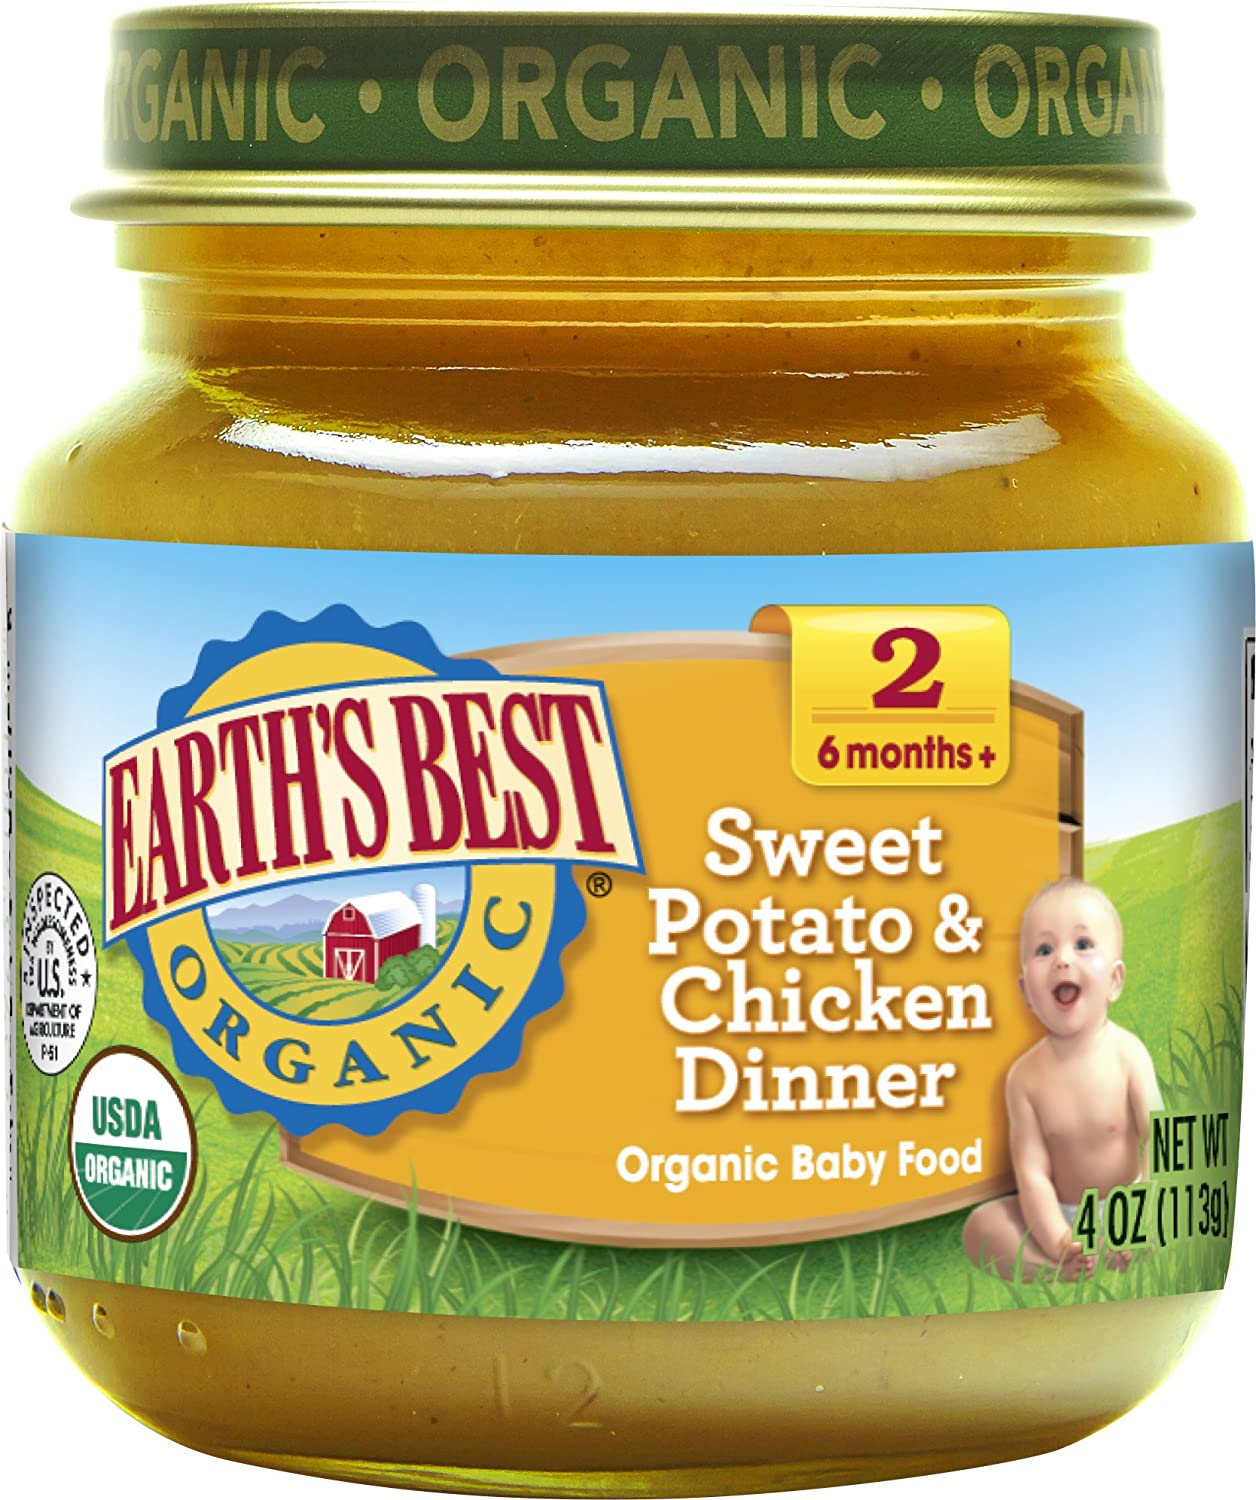 Earth's Best Organic Stage 2 Baby Food, Sweet Potato and Chicken Dinner, 4 oz. Jar